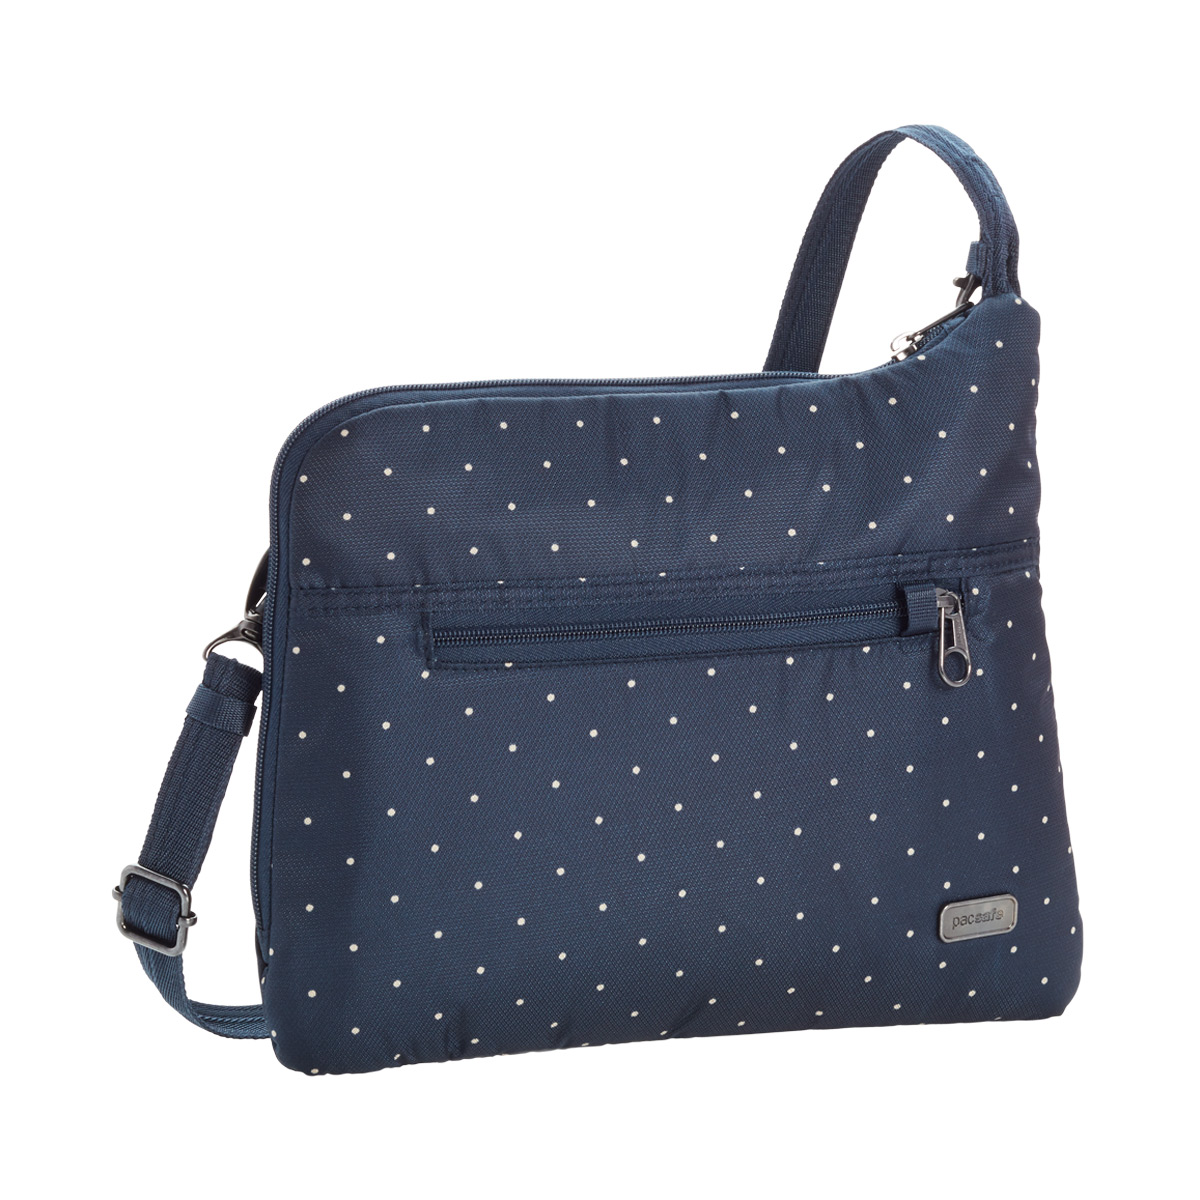 Pacsafe Navy Dots Daysafe Slim Crossbody